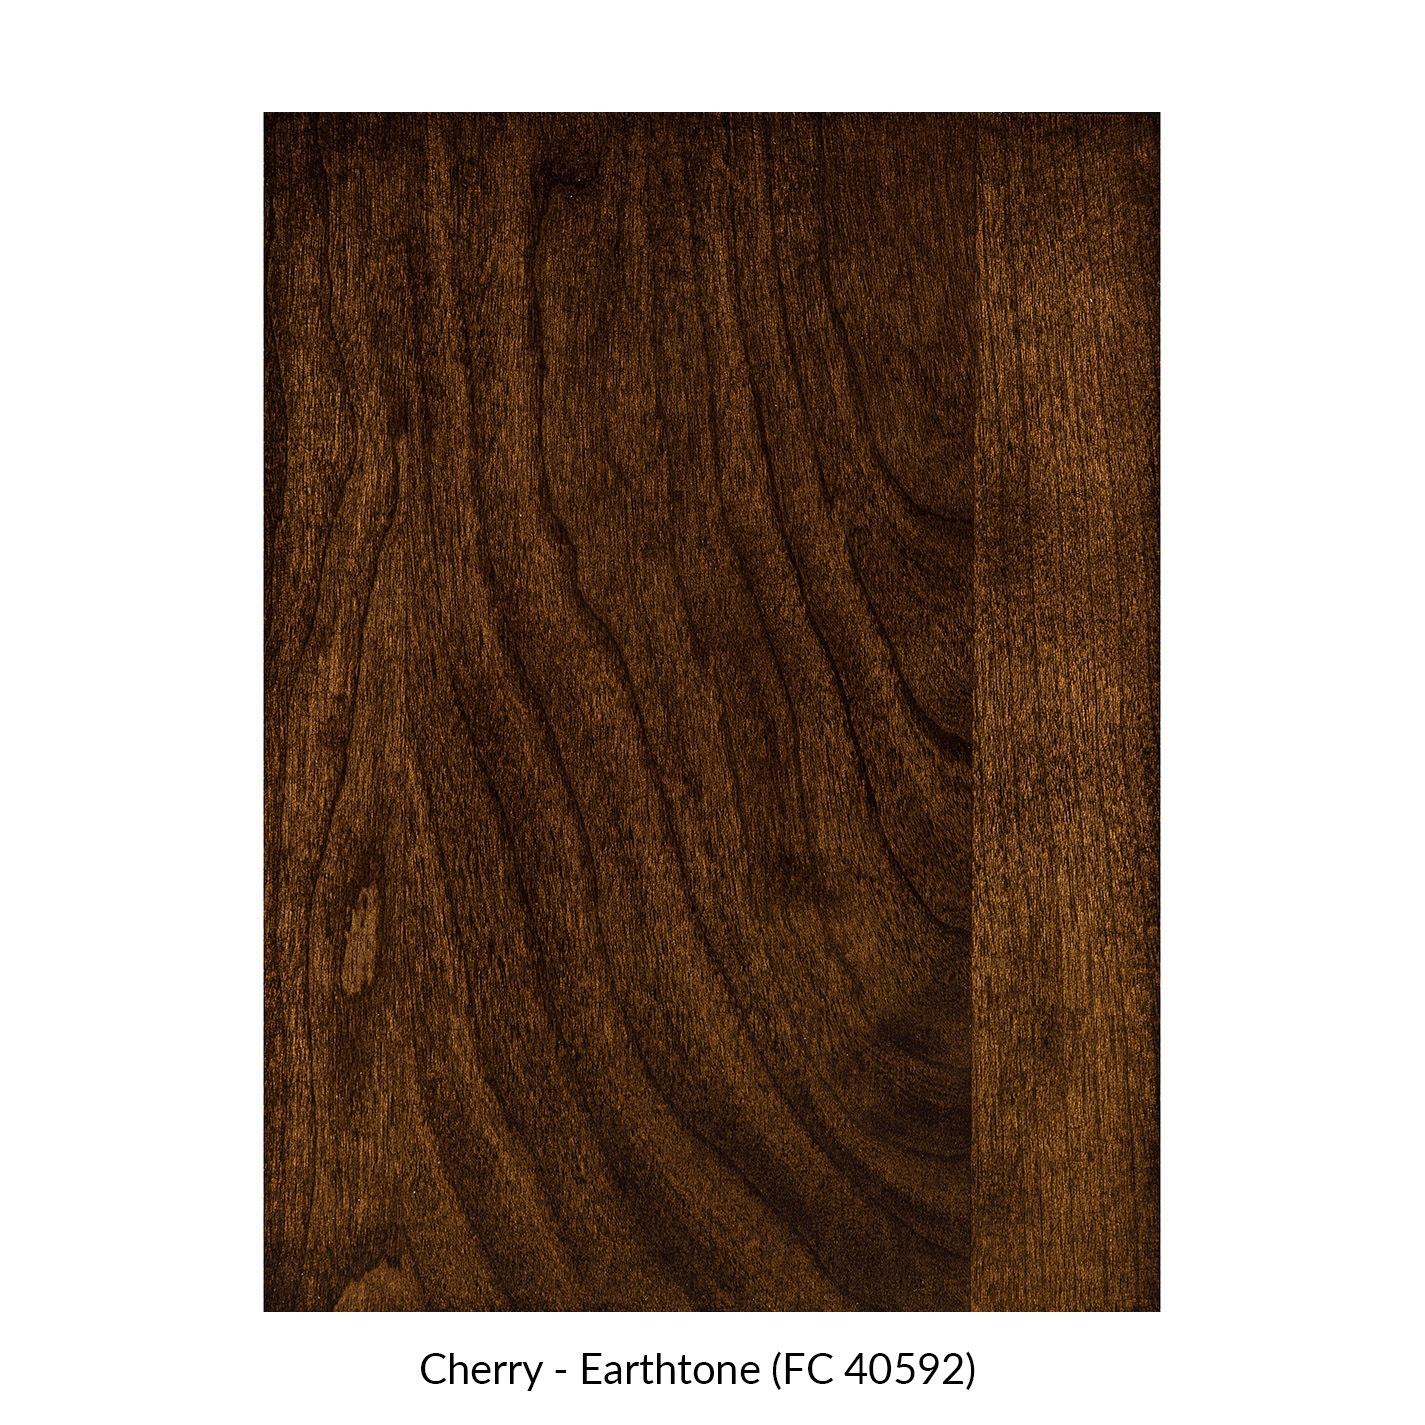 spectrum-cherry-earthtone-fc-40592.jpg